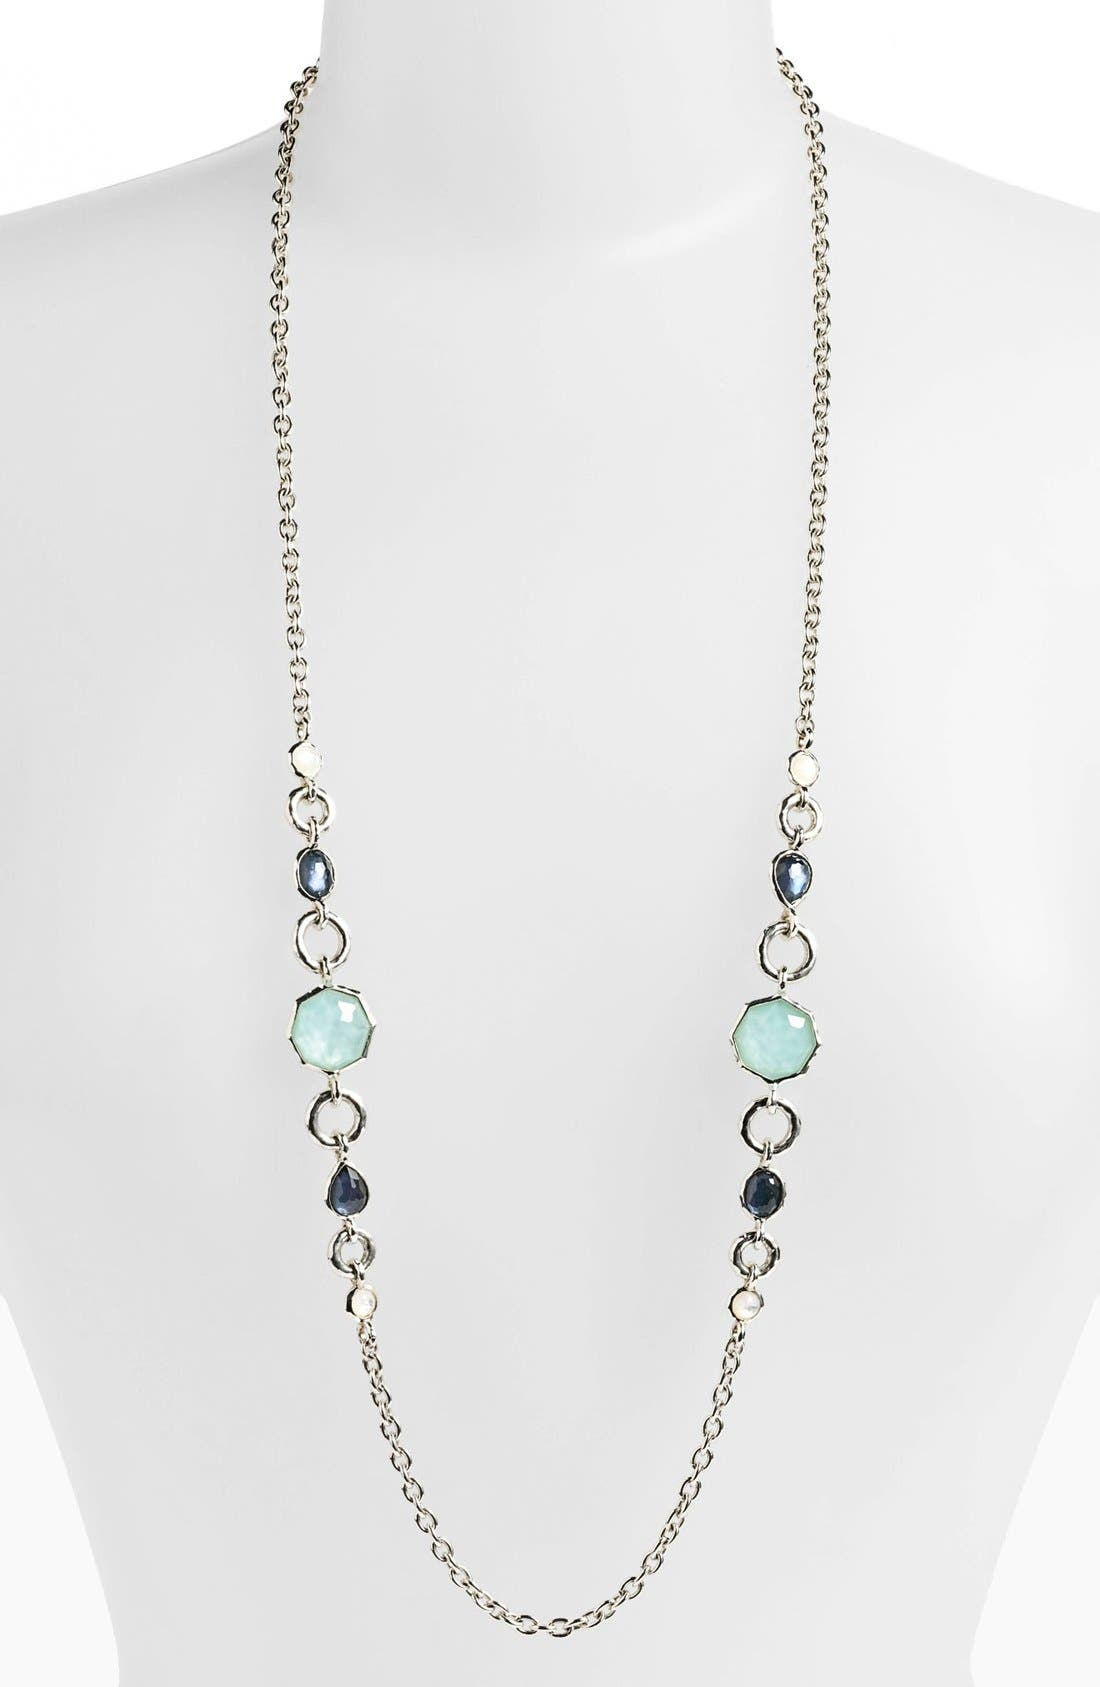 Alternate Image 1 Selected - Ippolita 'Wonderland' Long Station Necklace (Nordstrom Exclusive)